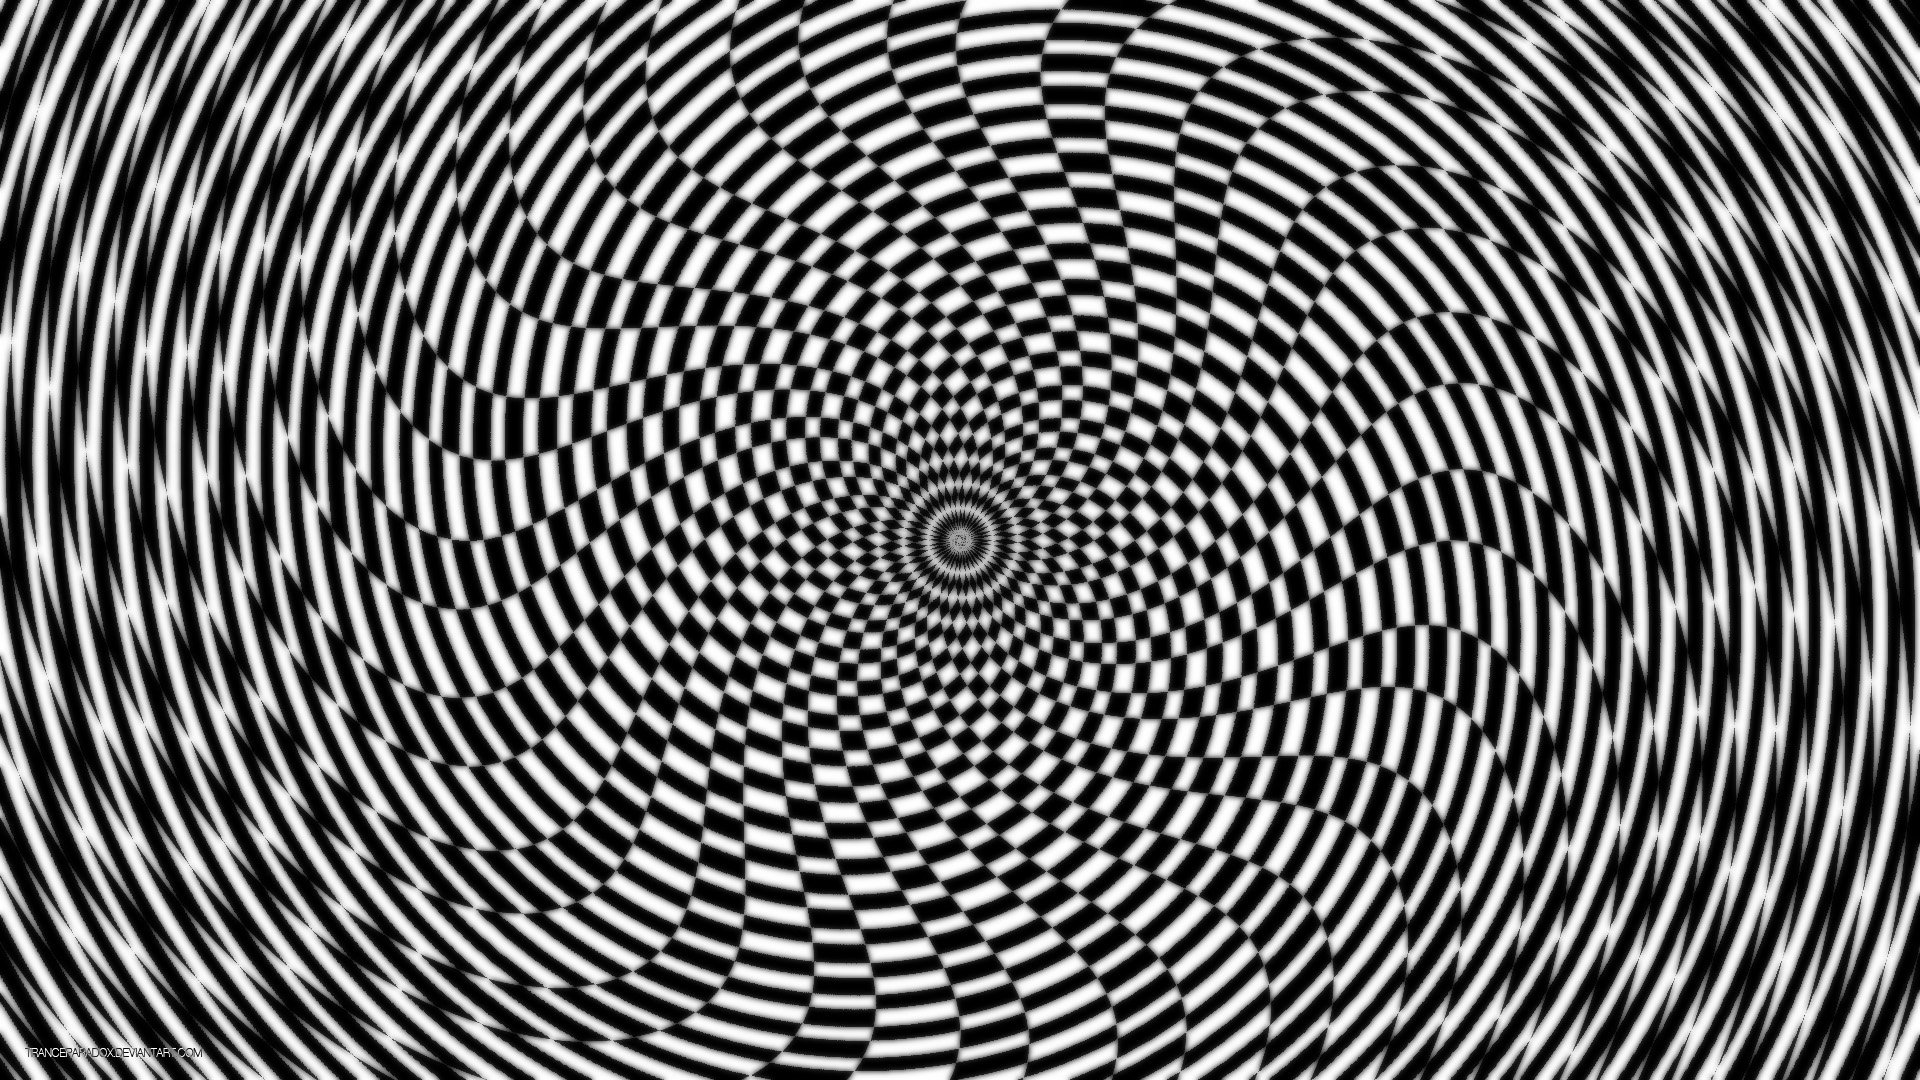 Trippy Wallpaper Black And White